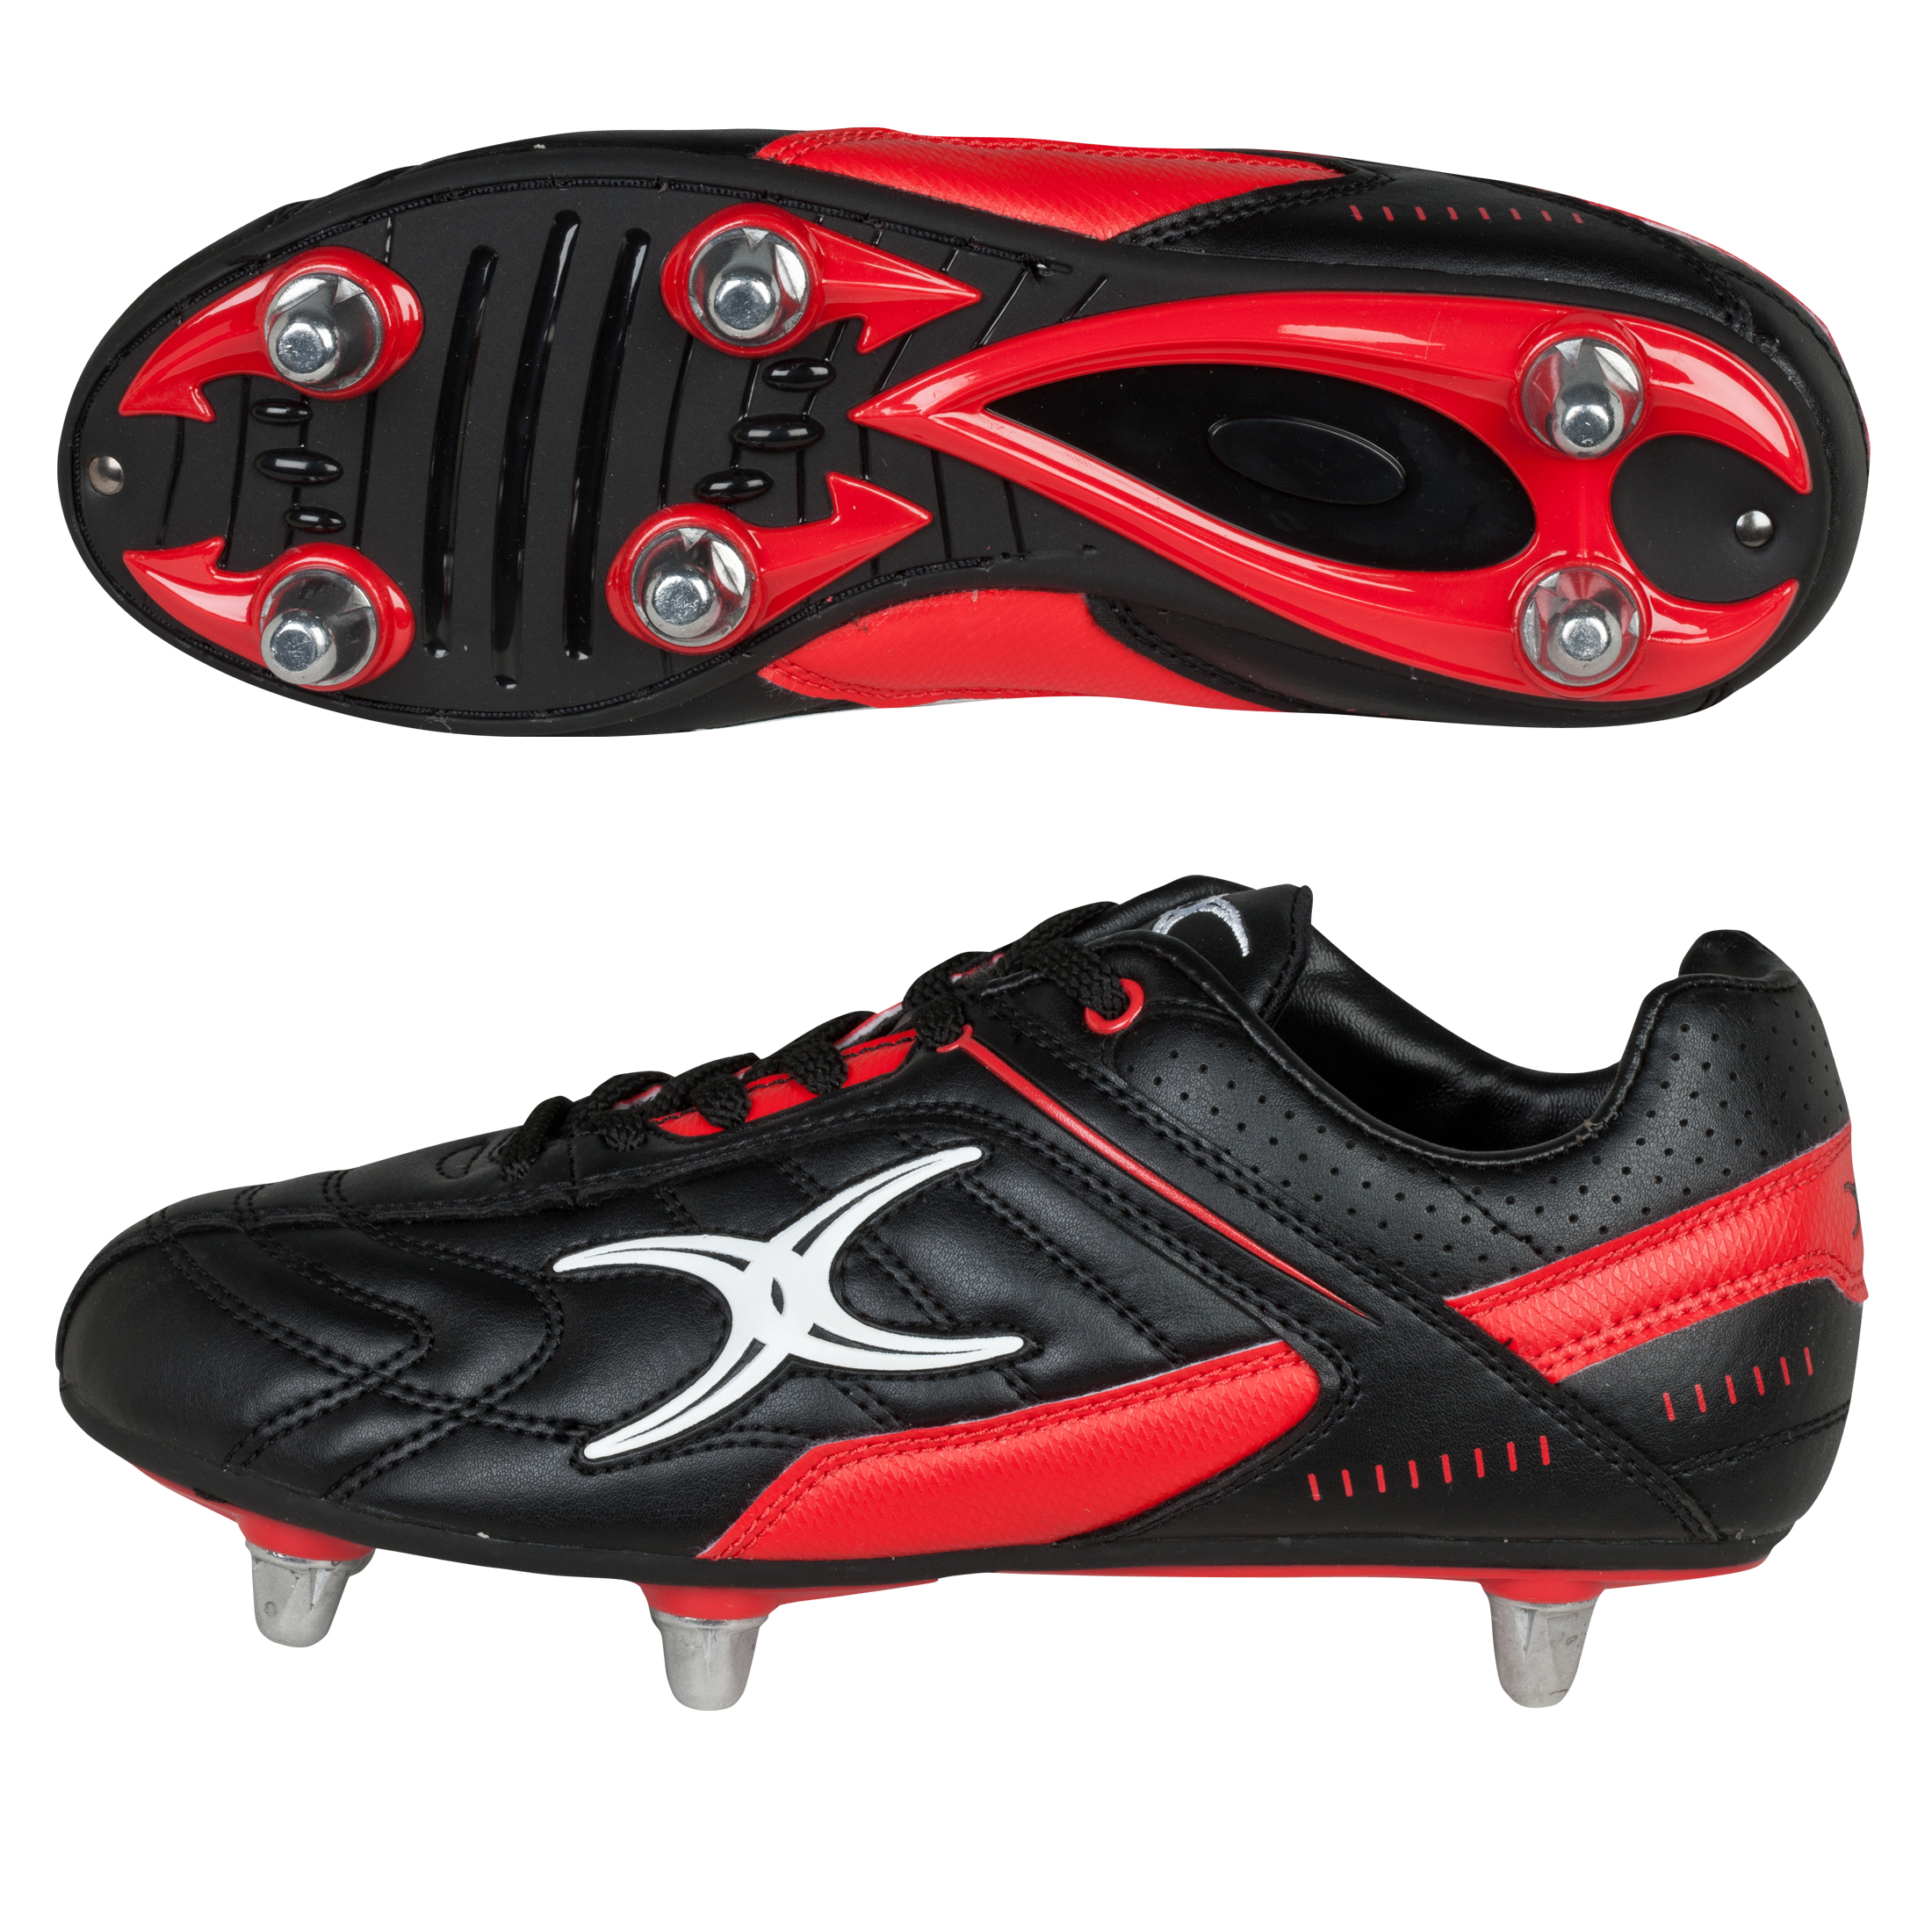 Gilbert Sidestep Barbarian Rugby Boots - Black/Red - Kids